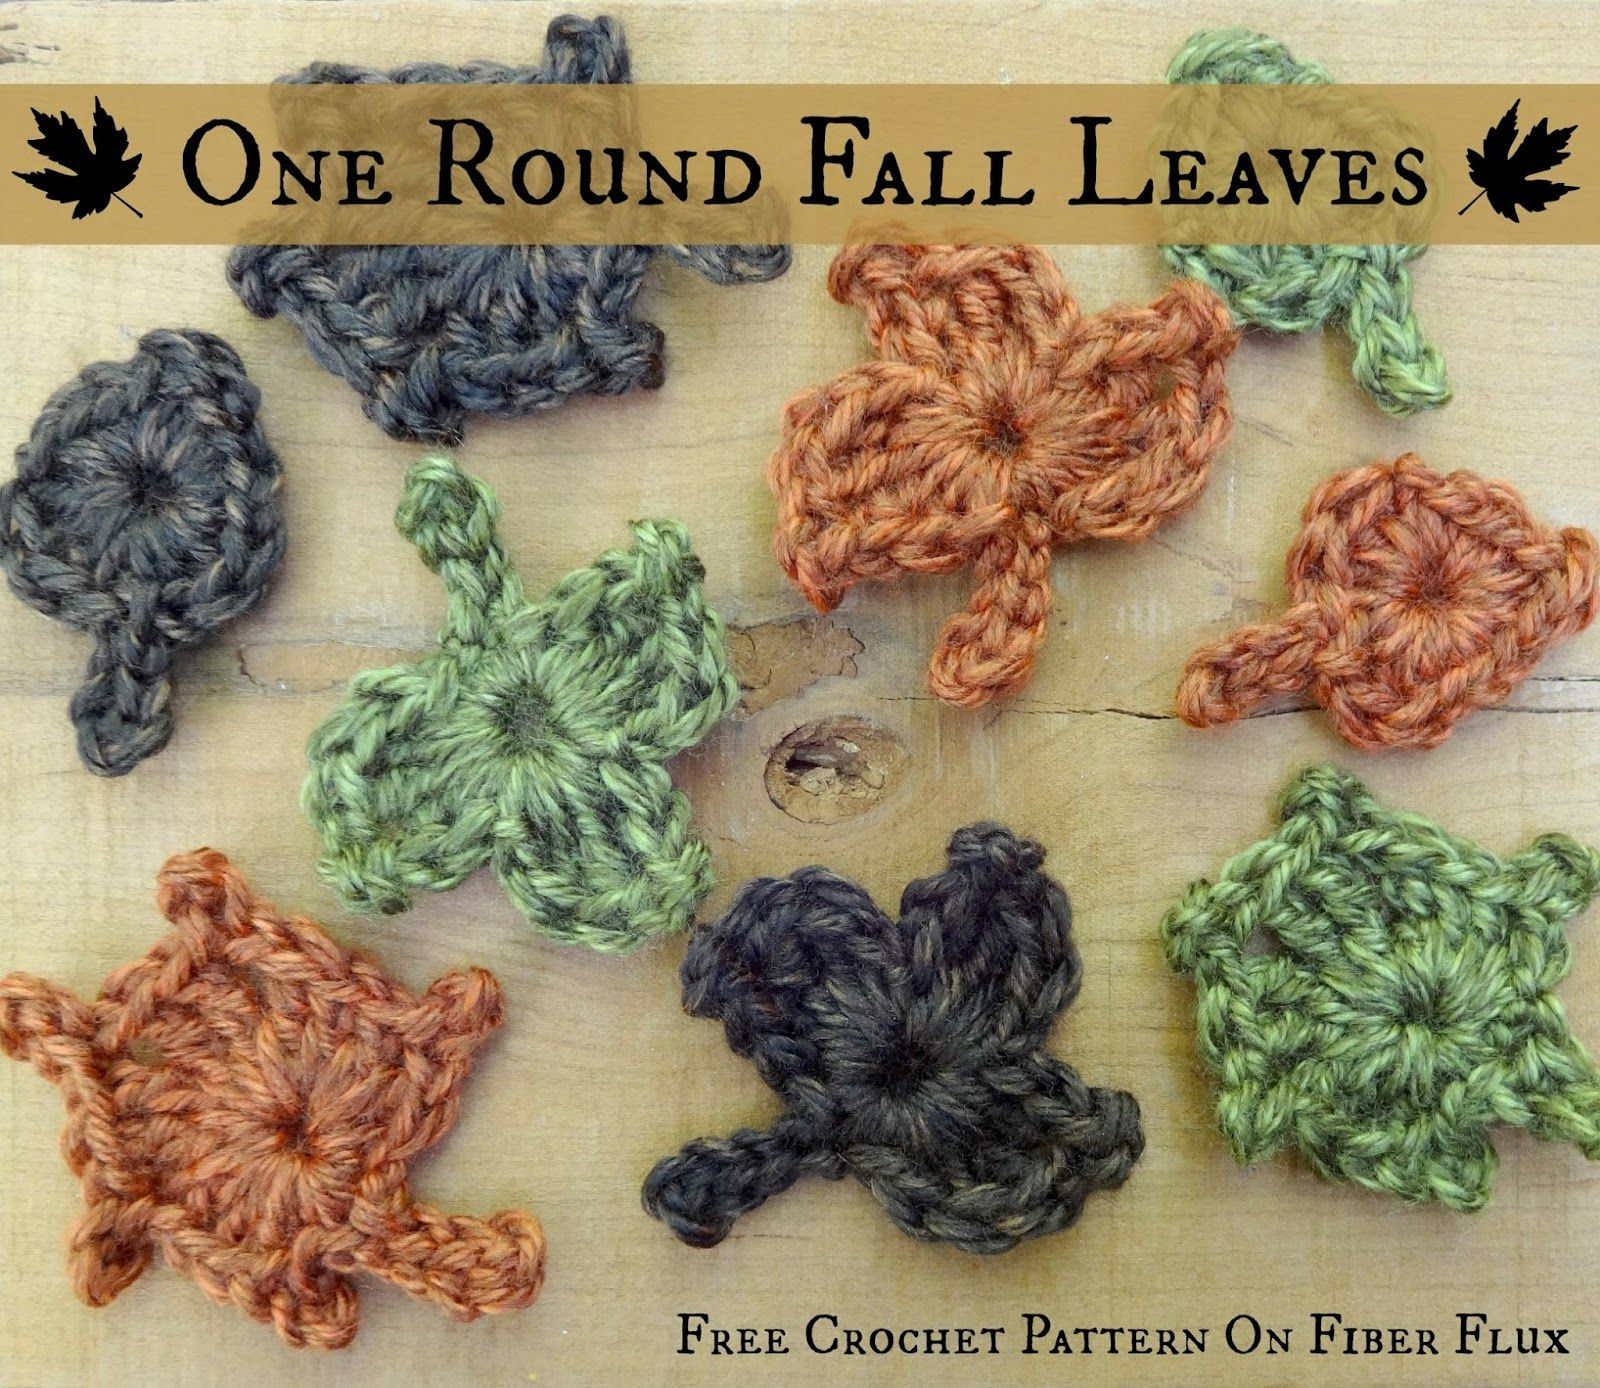 Fiber fluxventures in stitching free crochet pattern adventures in stitching free crochet pattern round fall leaves bankloansurffo Image collections